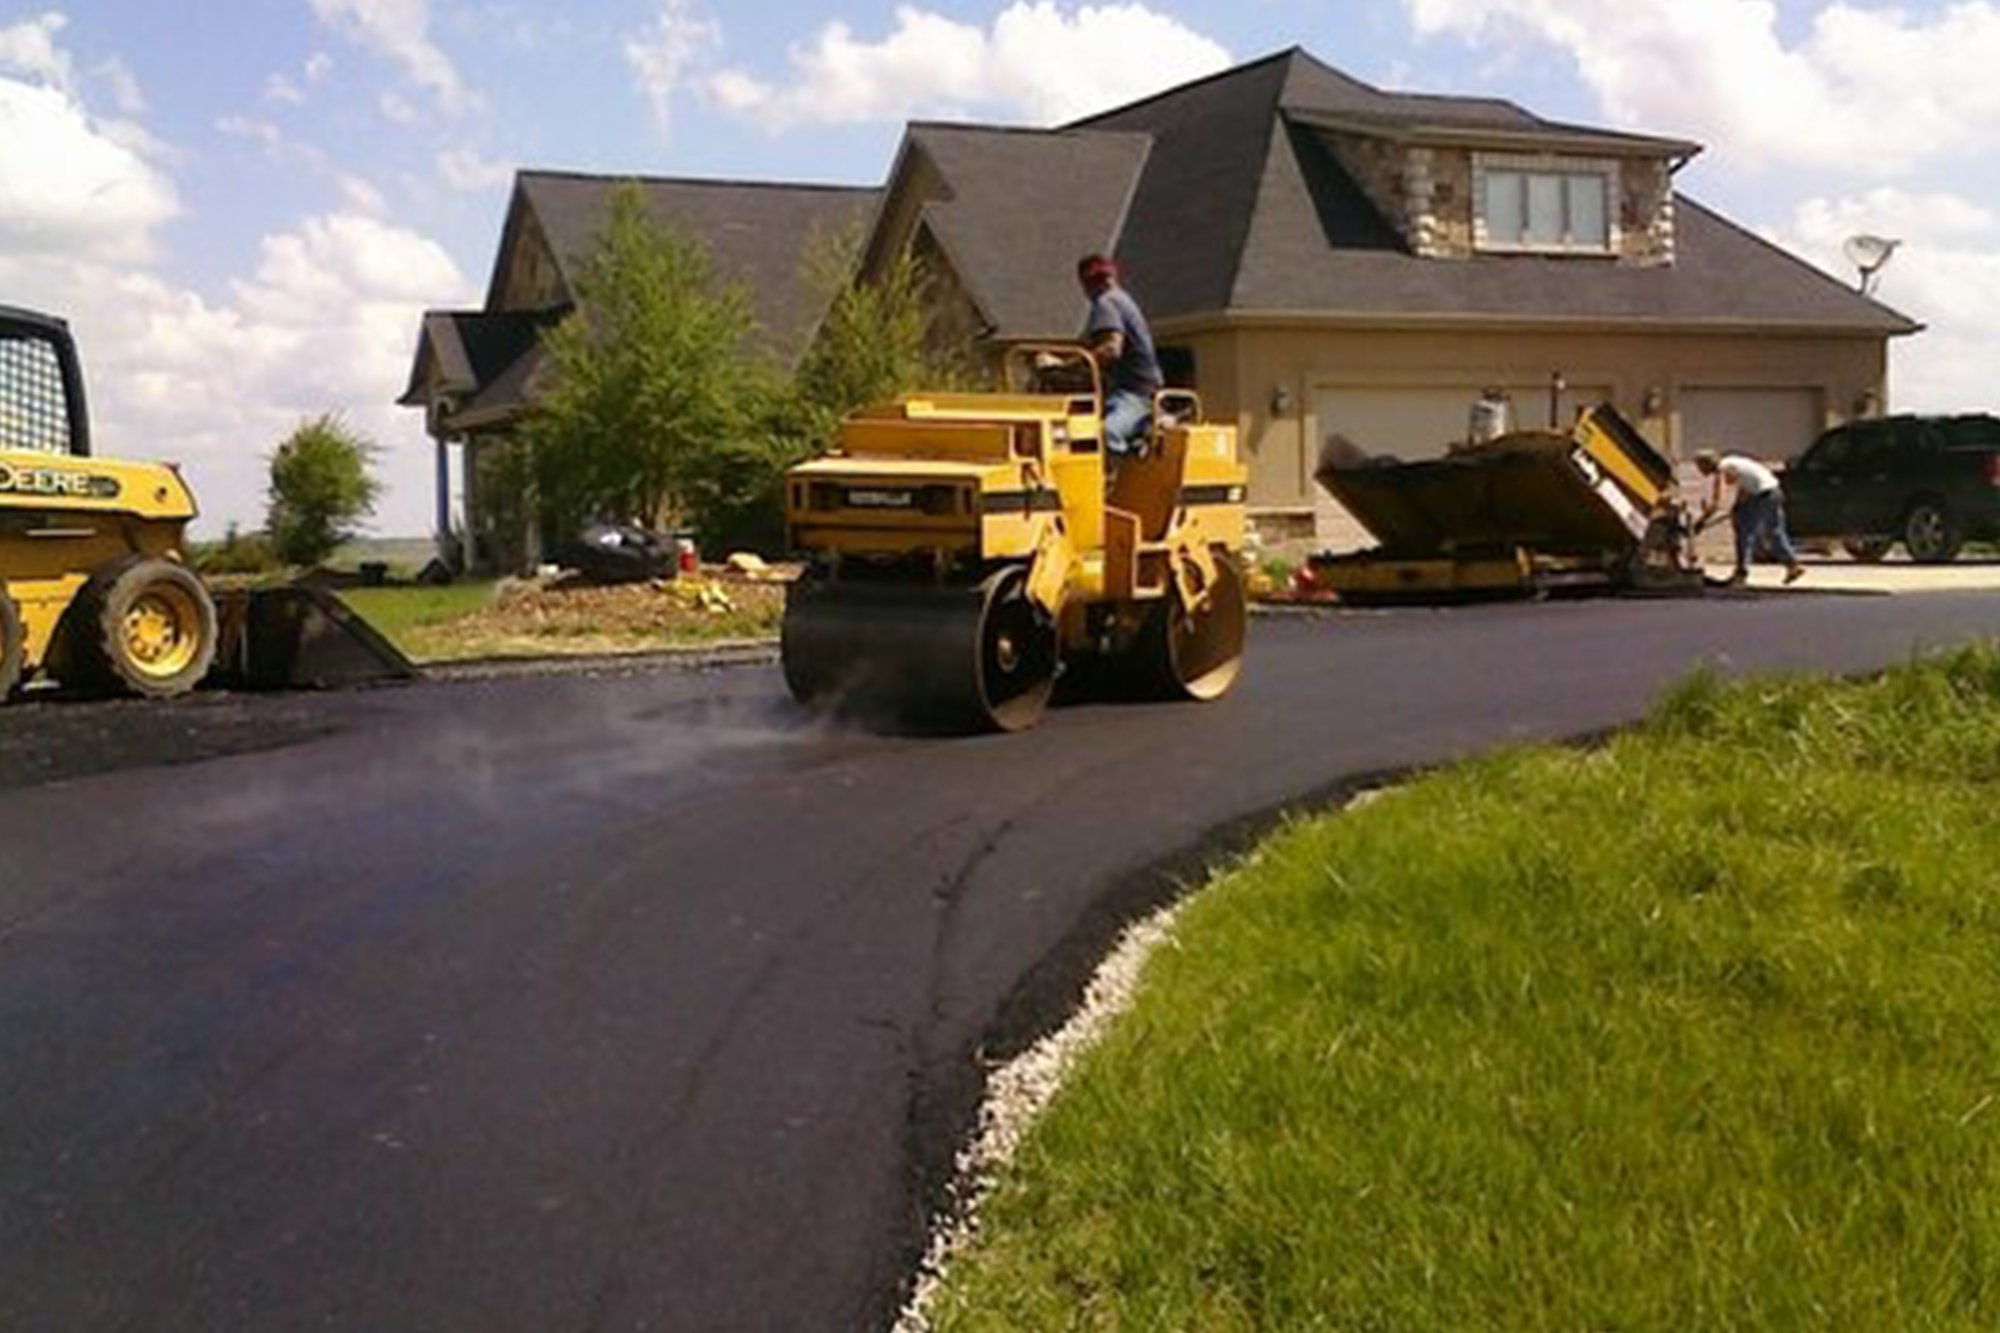 Lincoln Paving Asphalt and Driveway Repair and Patching Lincoln Asphalt paving and overlays home feature2 - Driveway Repair